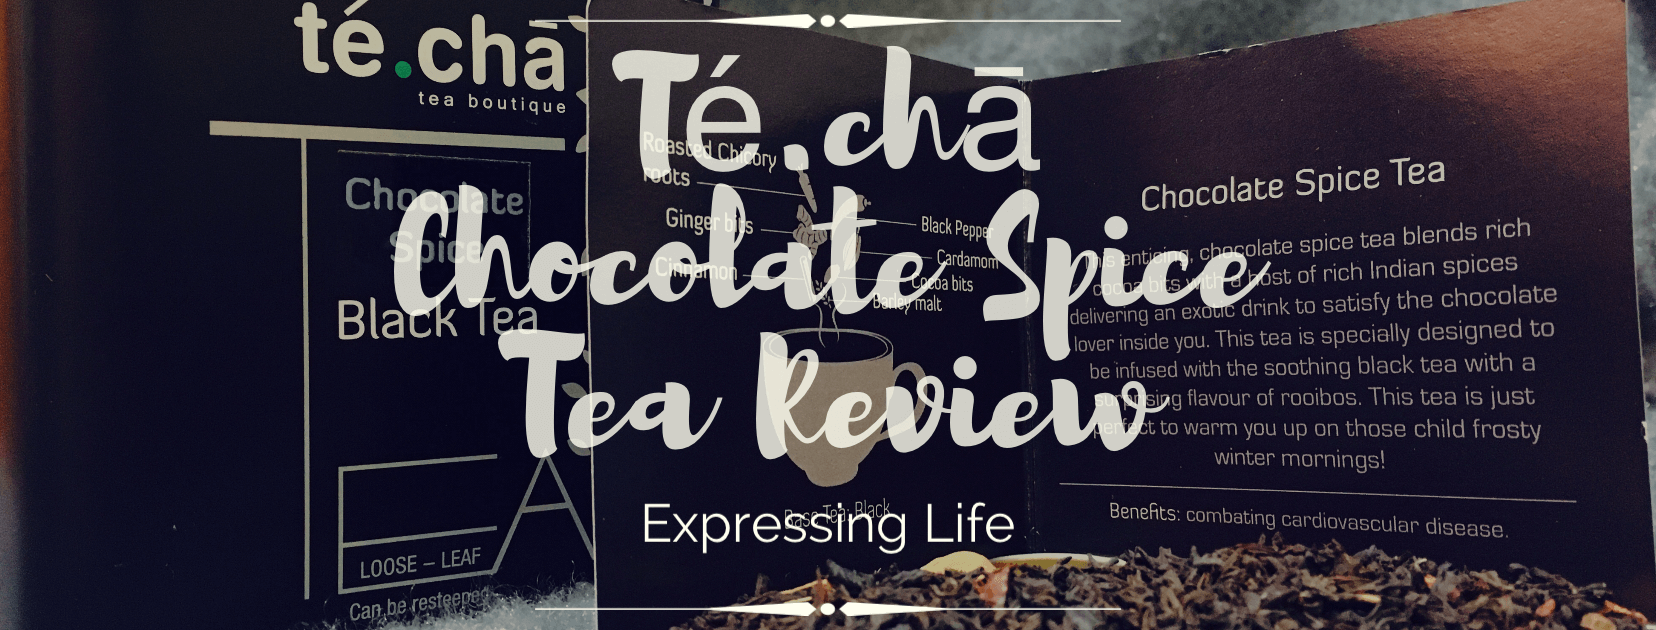 techa-chocolate-spice-tea-review-tea-boutique